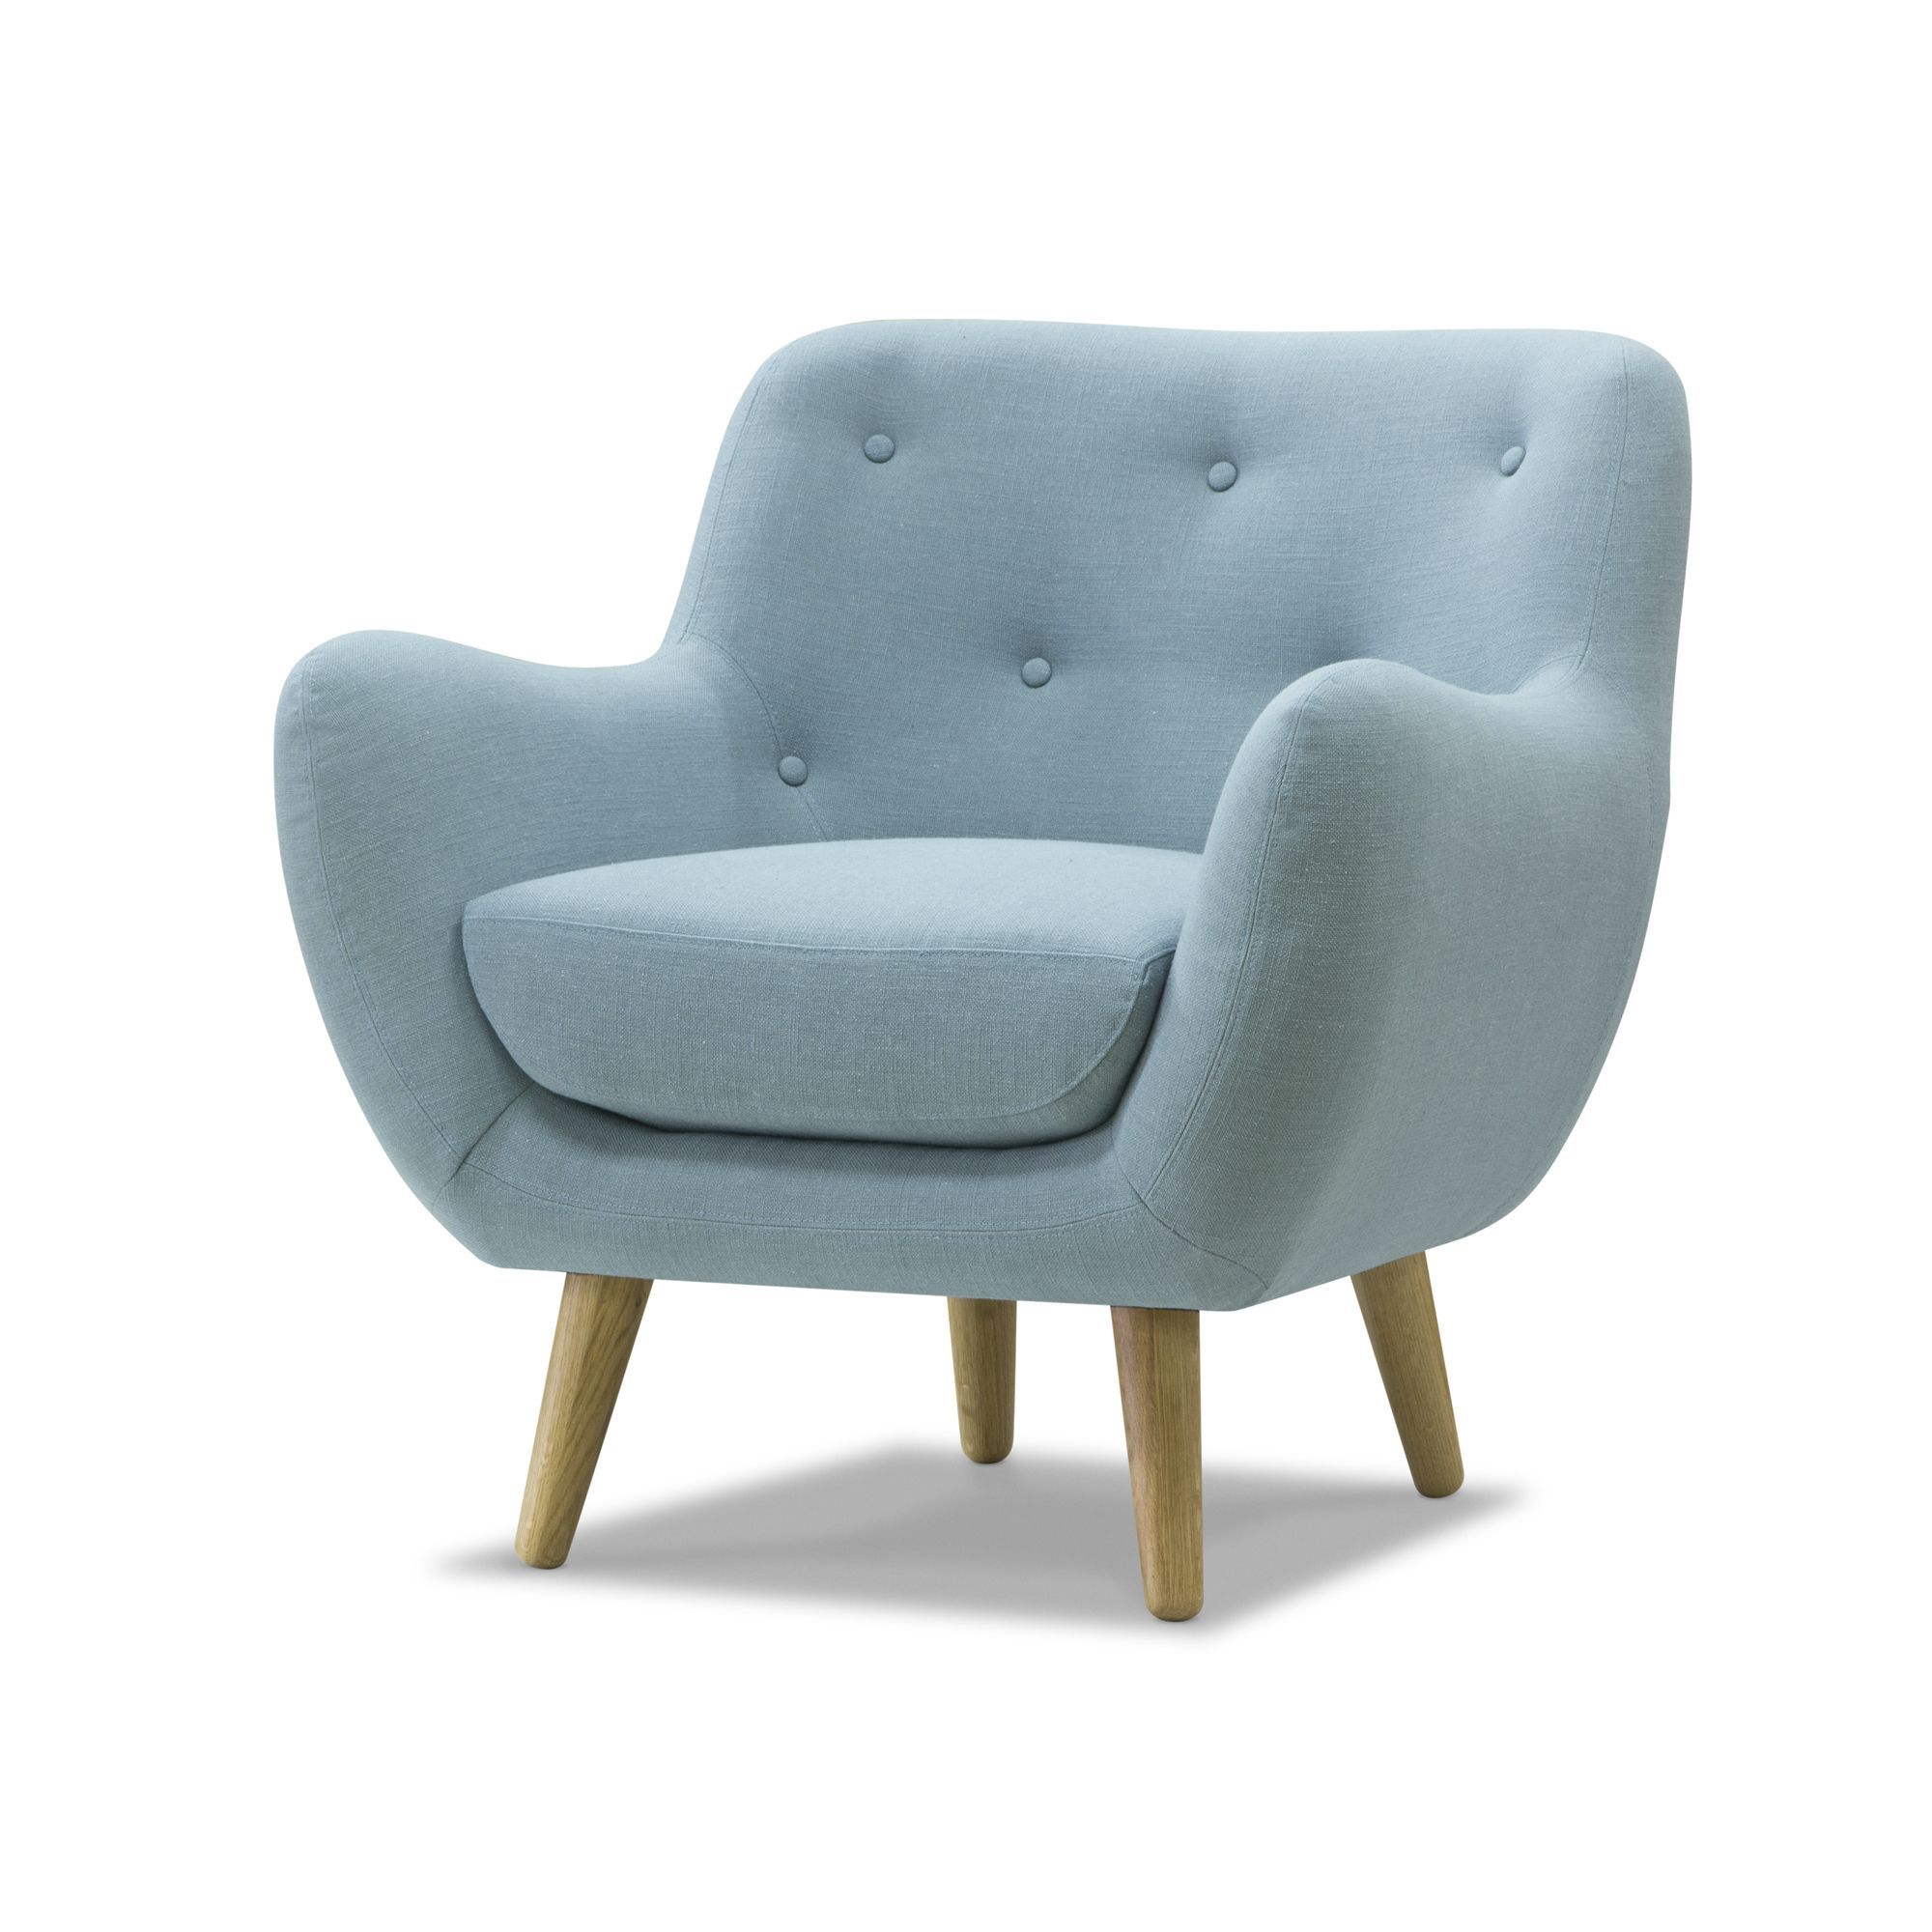 poppy meuble fauteuil esprit scandinave bleu pouf salon. Black Bedroom Furniture Sets. Home Design Ideas